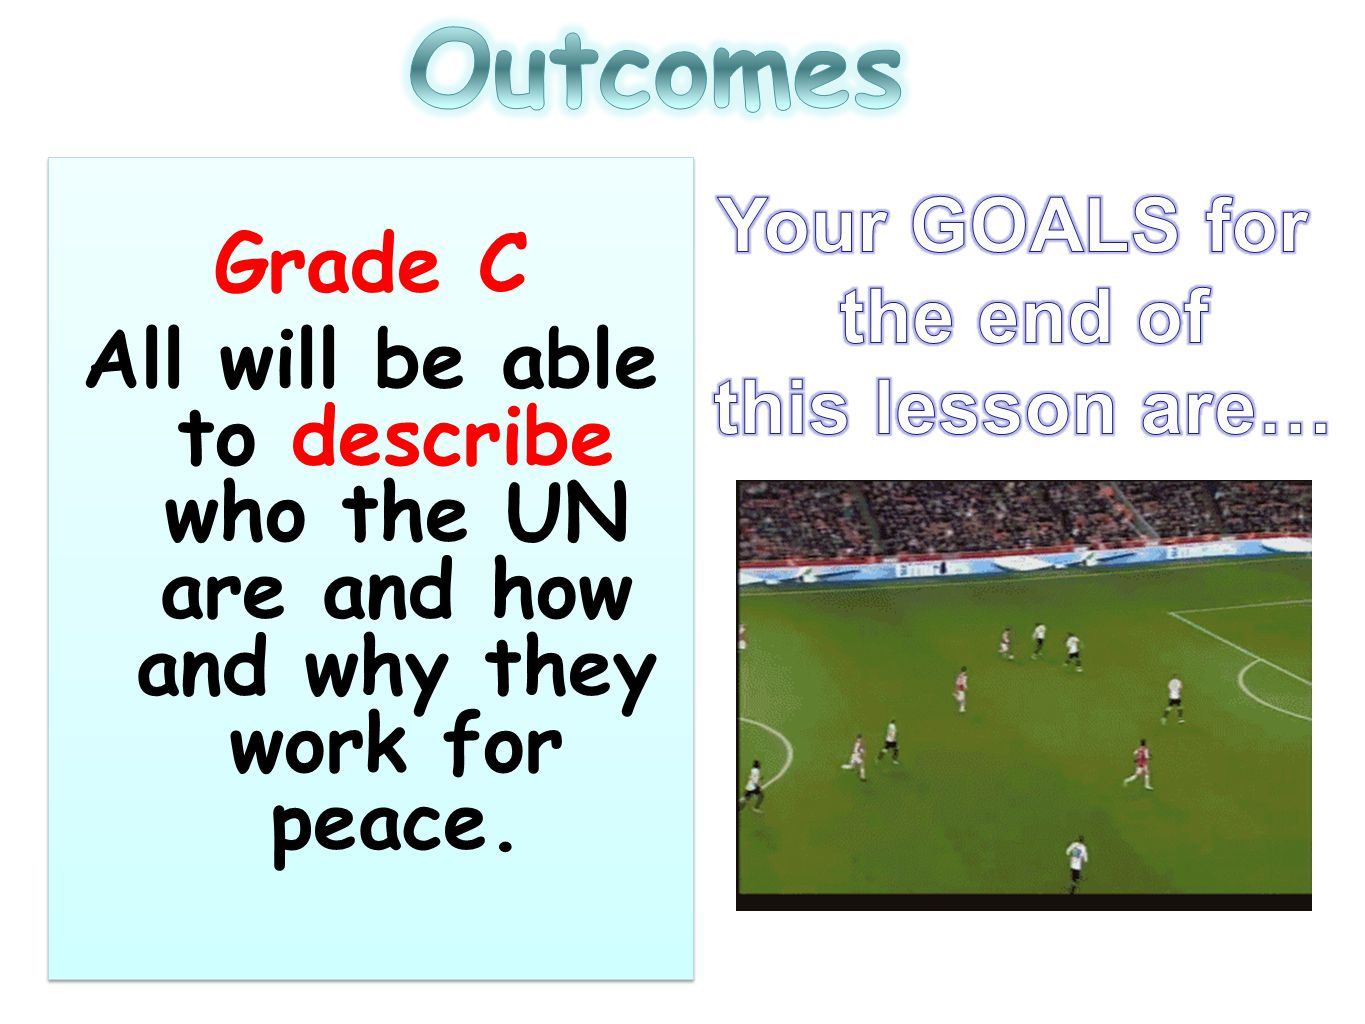 Grade C All will be able to describe who the UN are and how and why they work for peace.